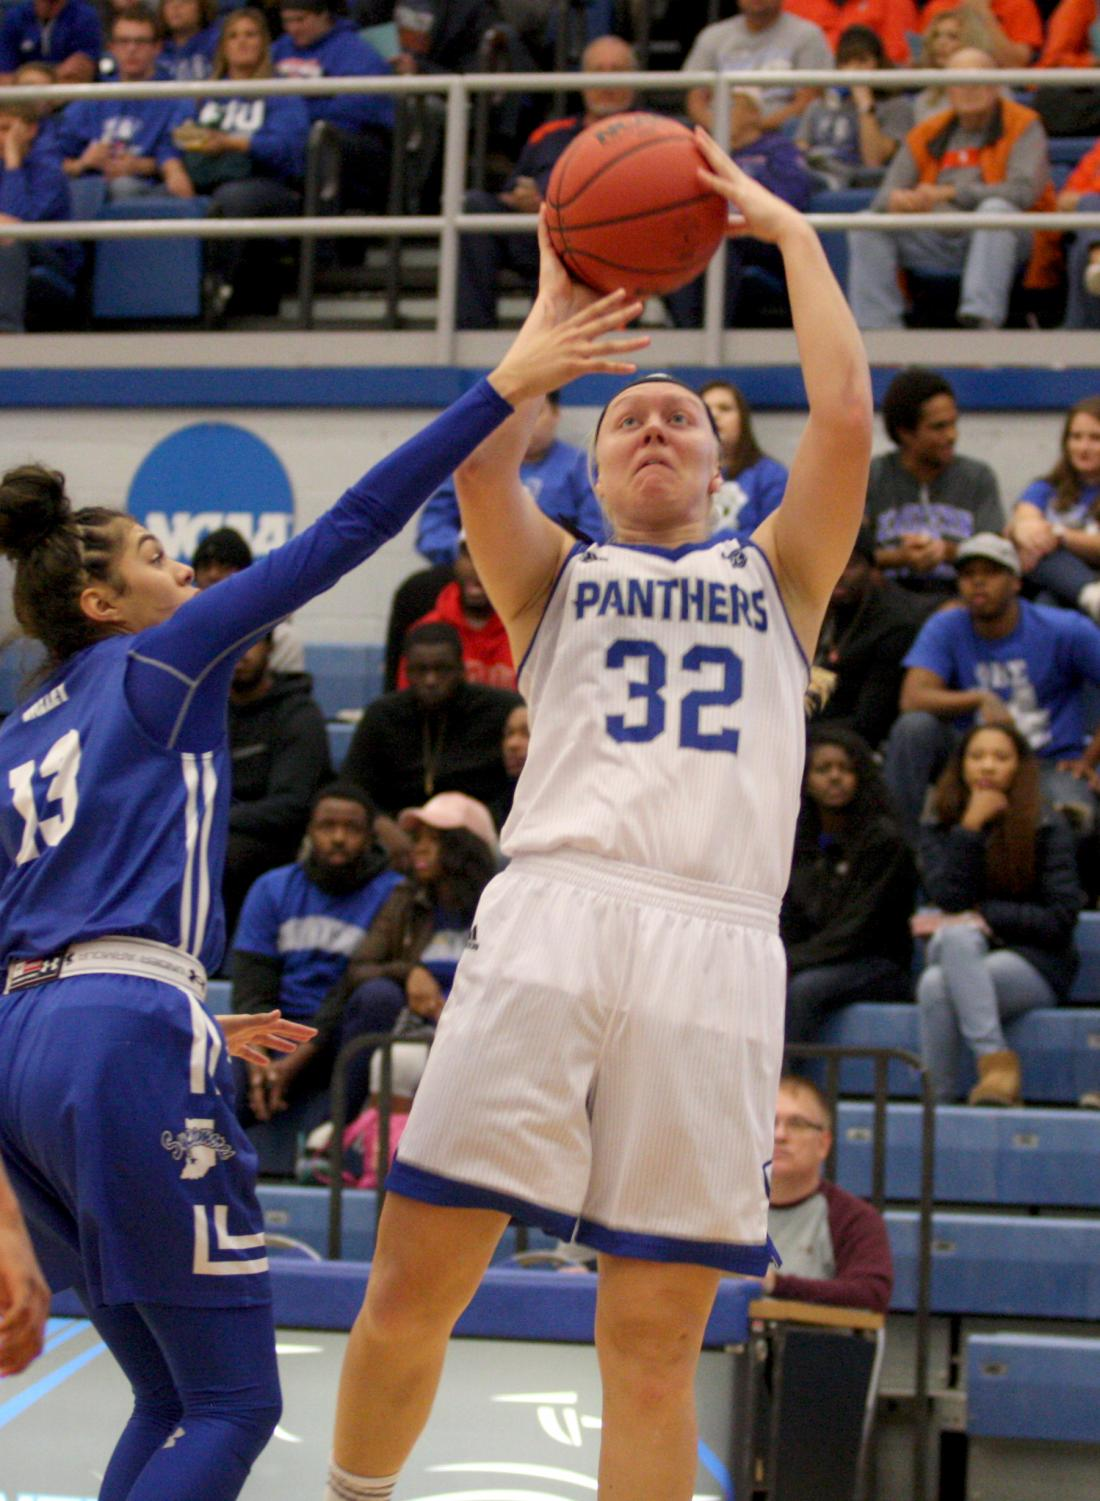 Sophomore Jennifer Nehls goes up for the layup in Eastern's win over Indiana State. She had 9 points and 7 rebounds.